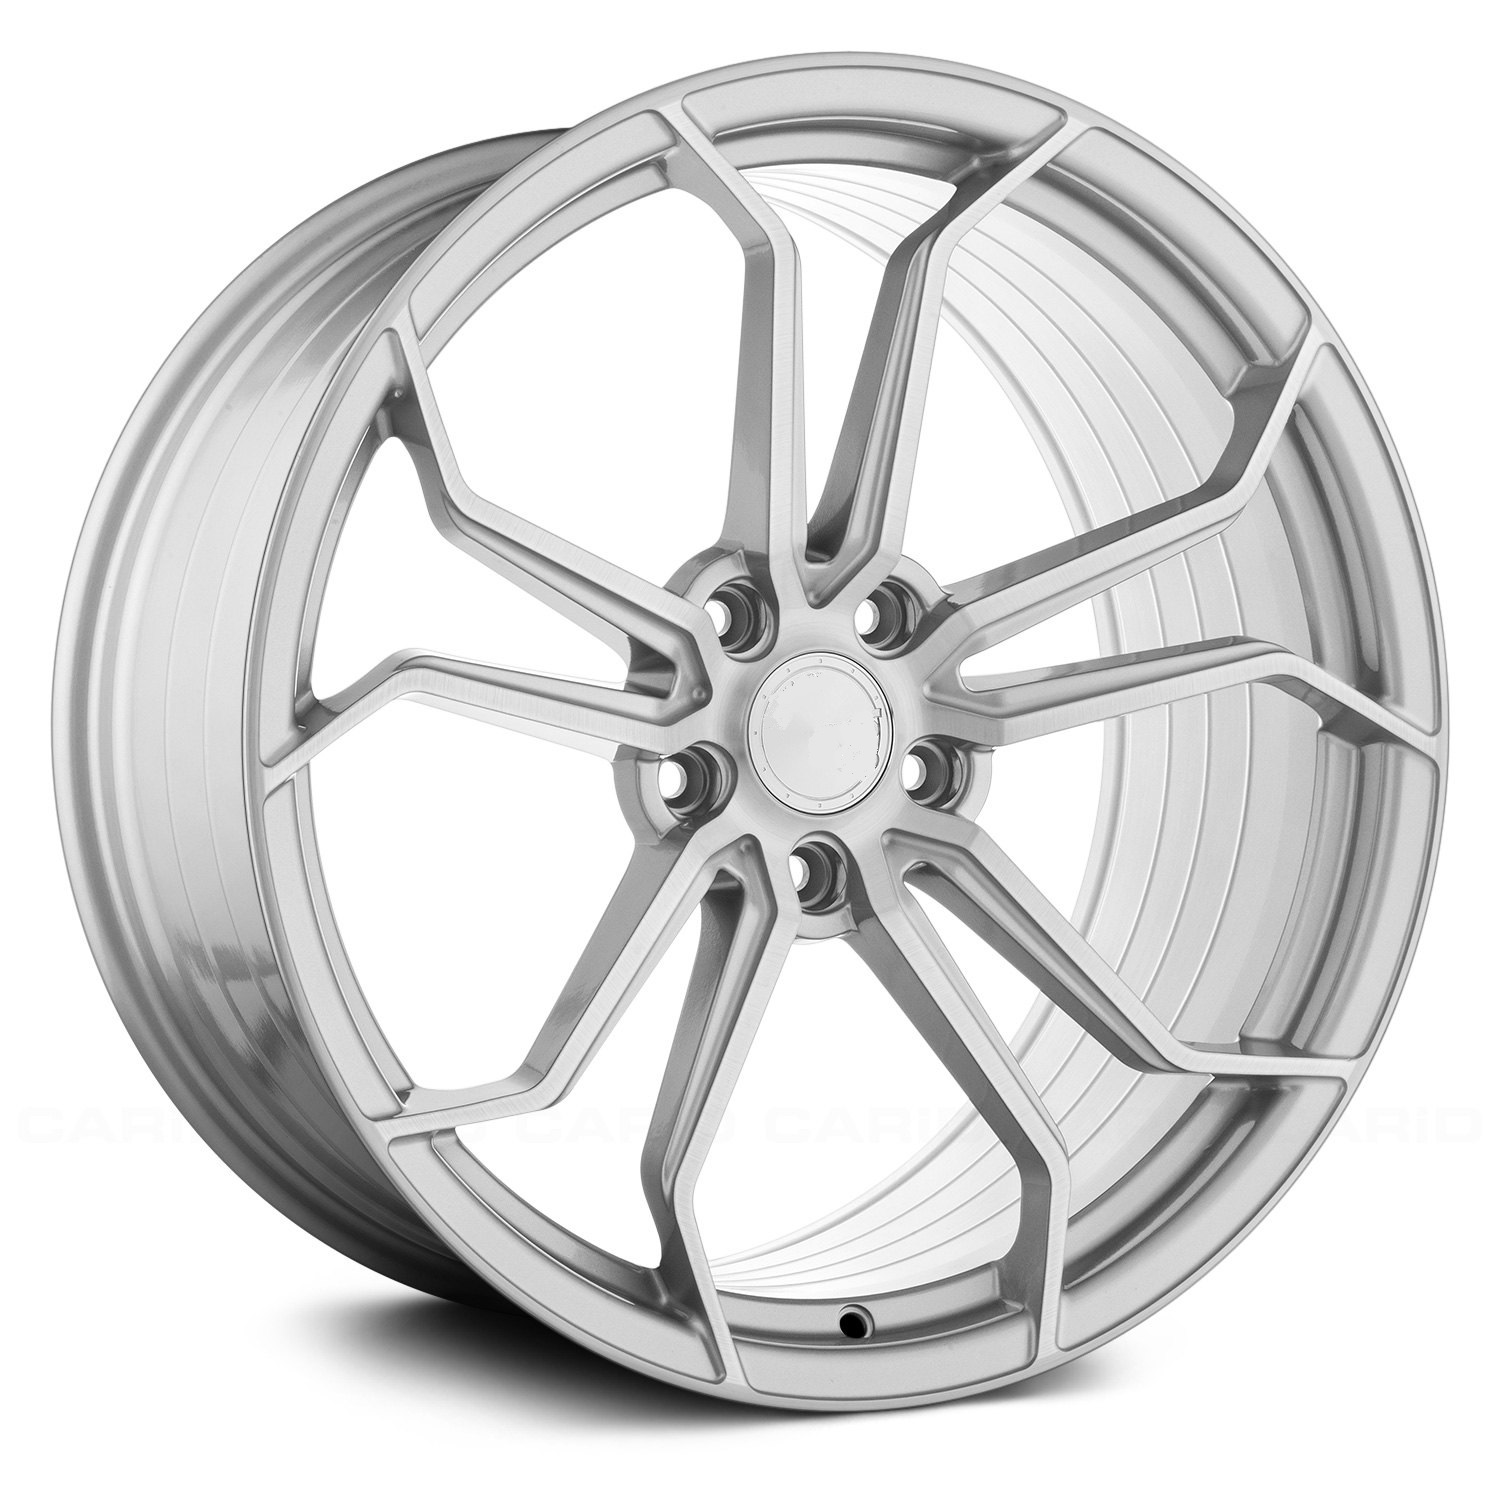 "NEW 19"" VEEMANN VC632 ALLOY WHEELS IN SILVER WITH POLISHED FACE, WIDER 9.5"" REAR"